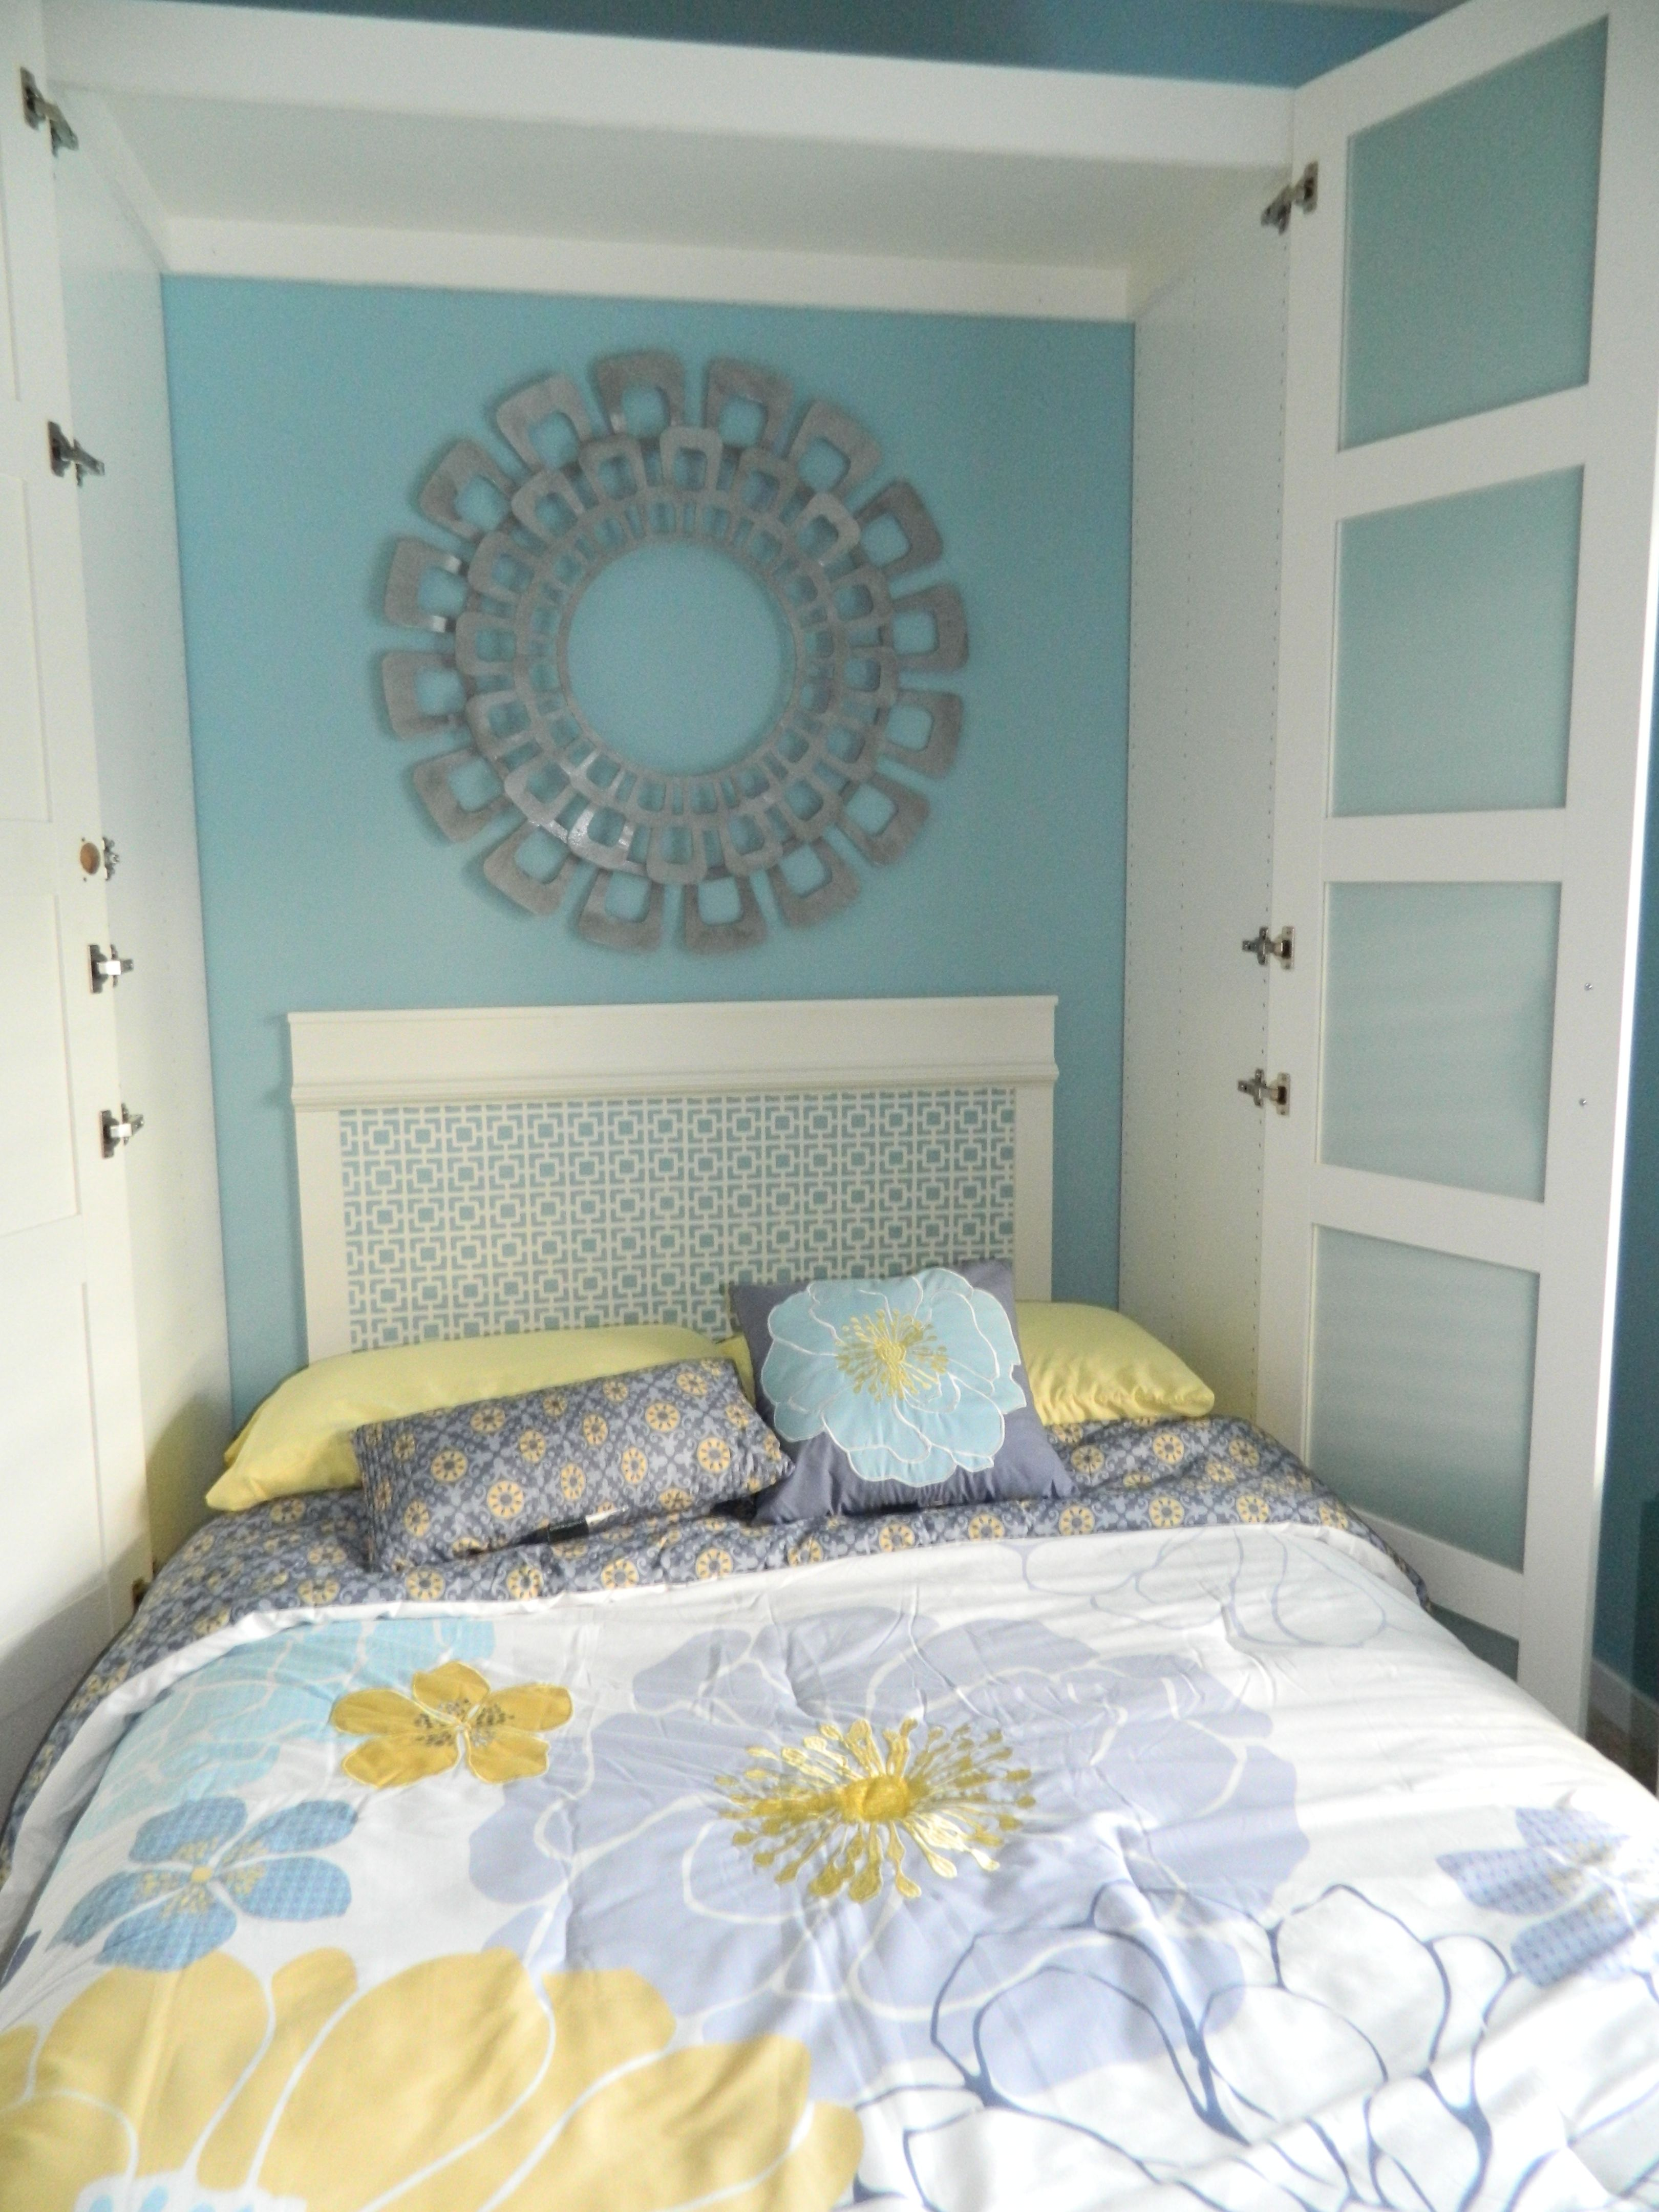 murphy bed love these colors yes please personalize them till rh pinterest com